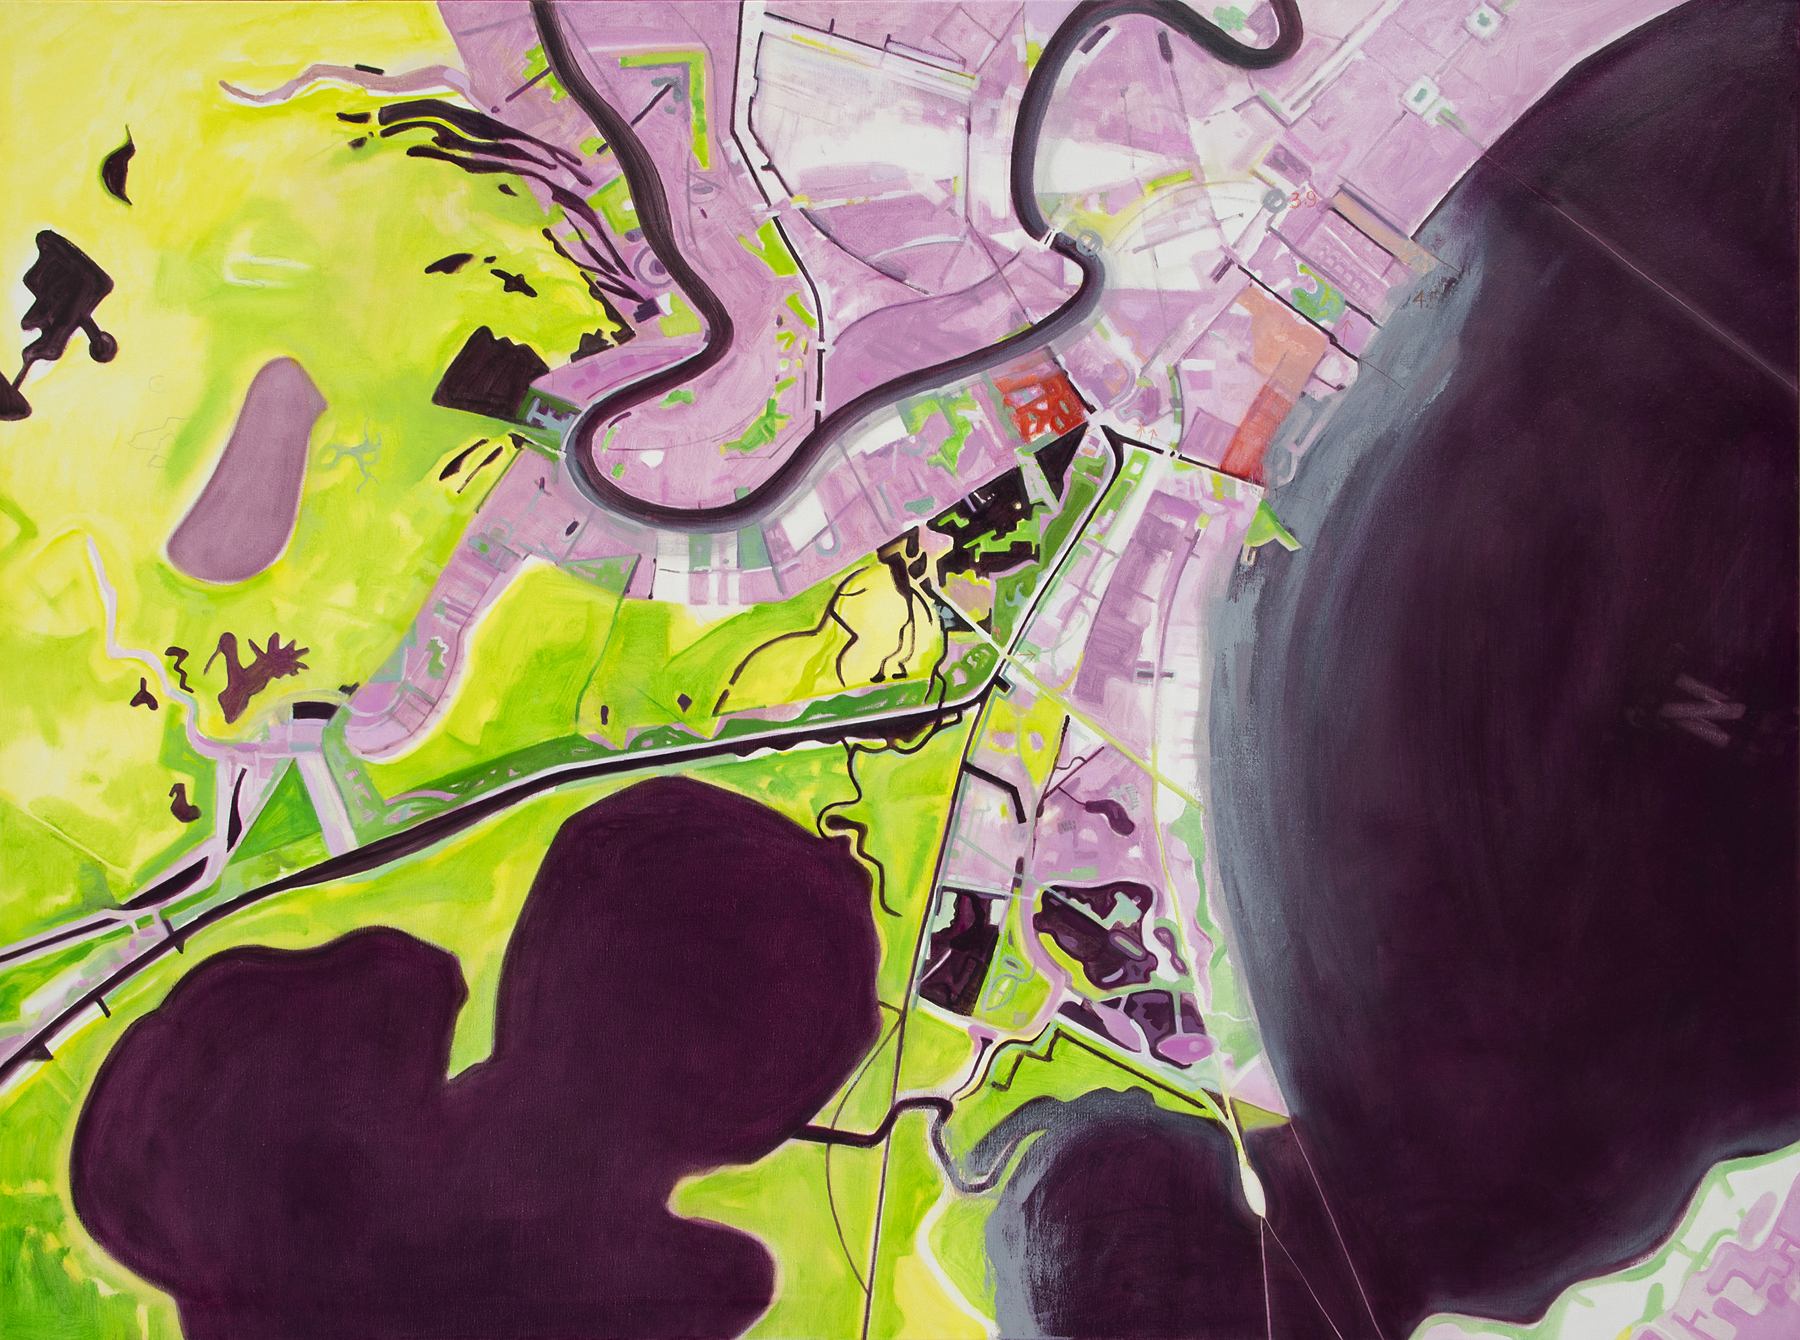 aerial painting in yellow-greens, lavendar and purples about New Orleans after hurricane Katrina